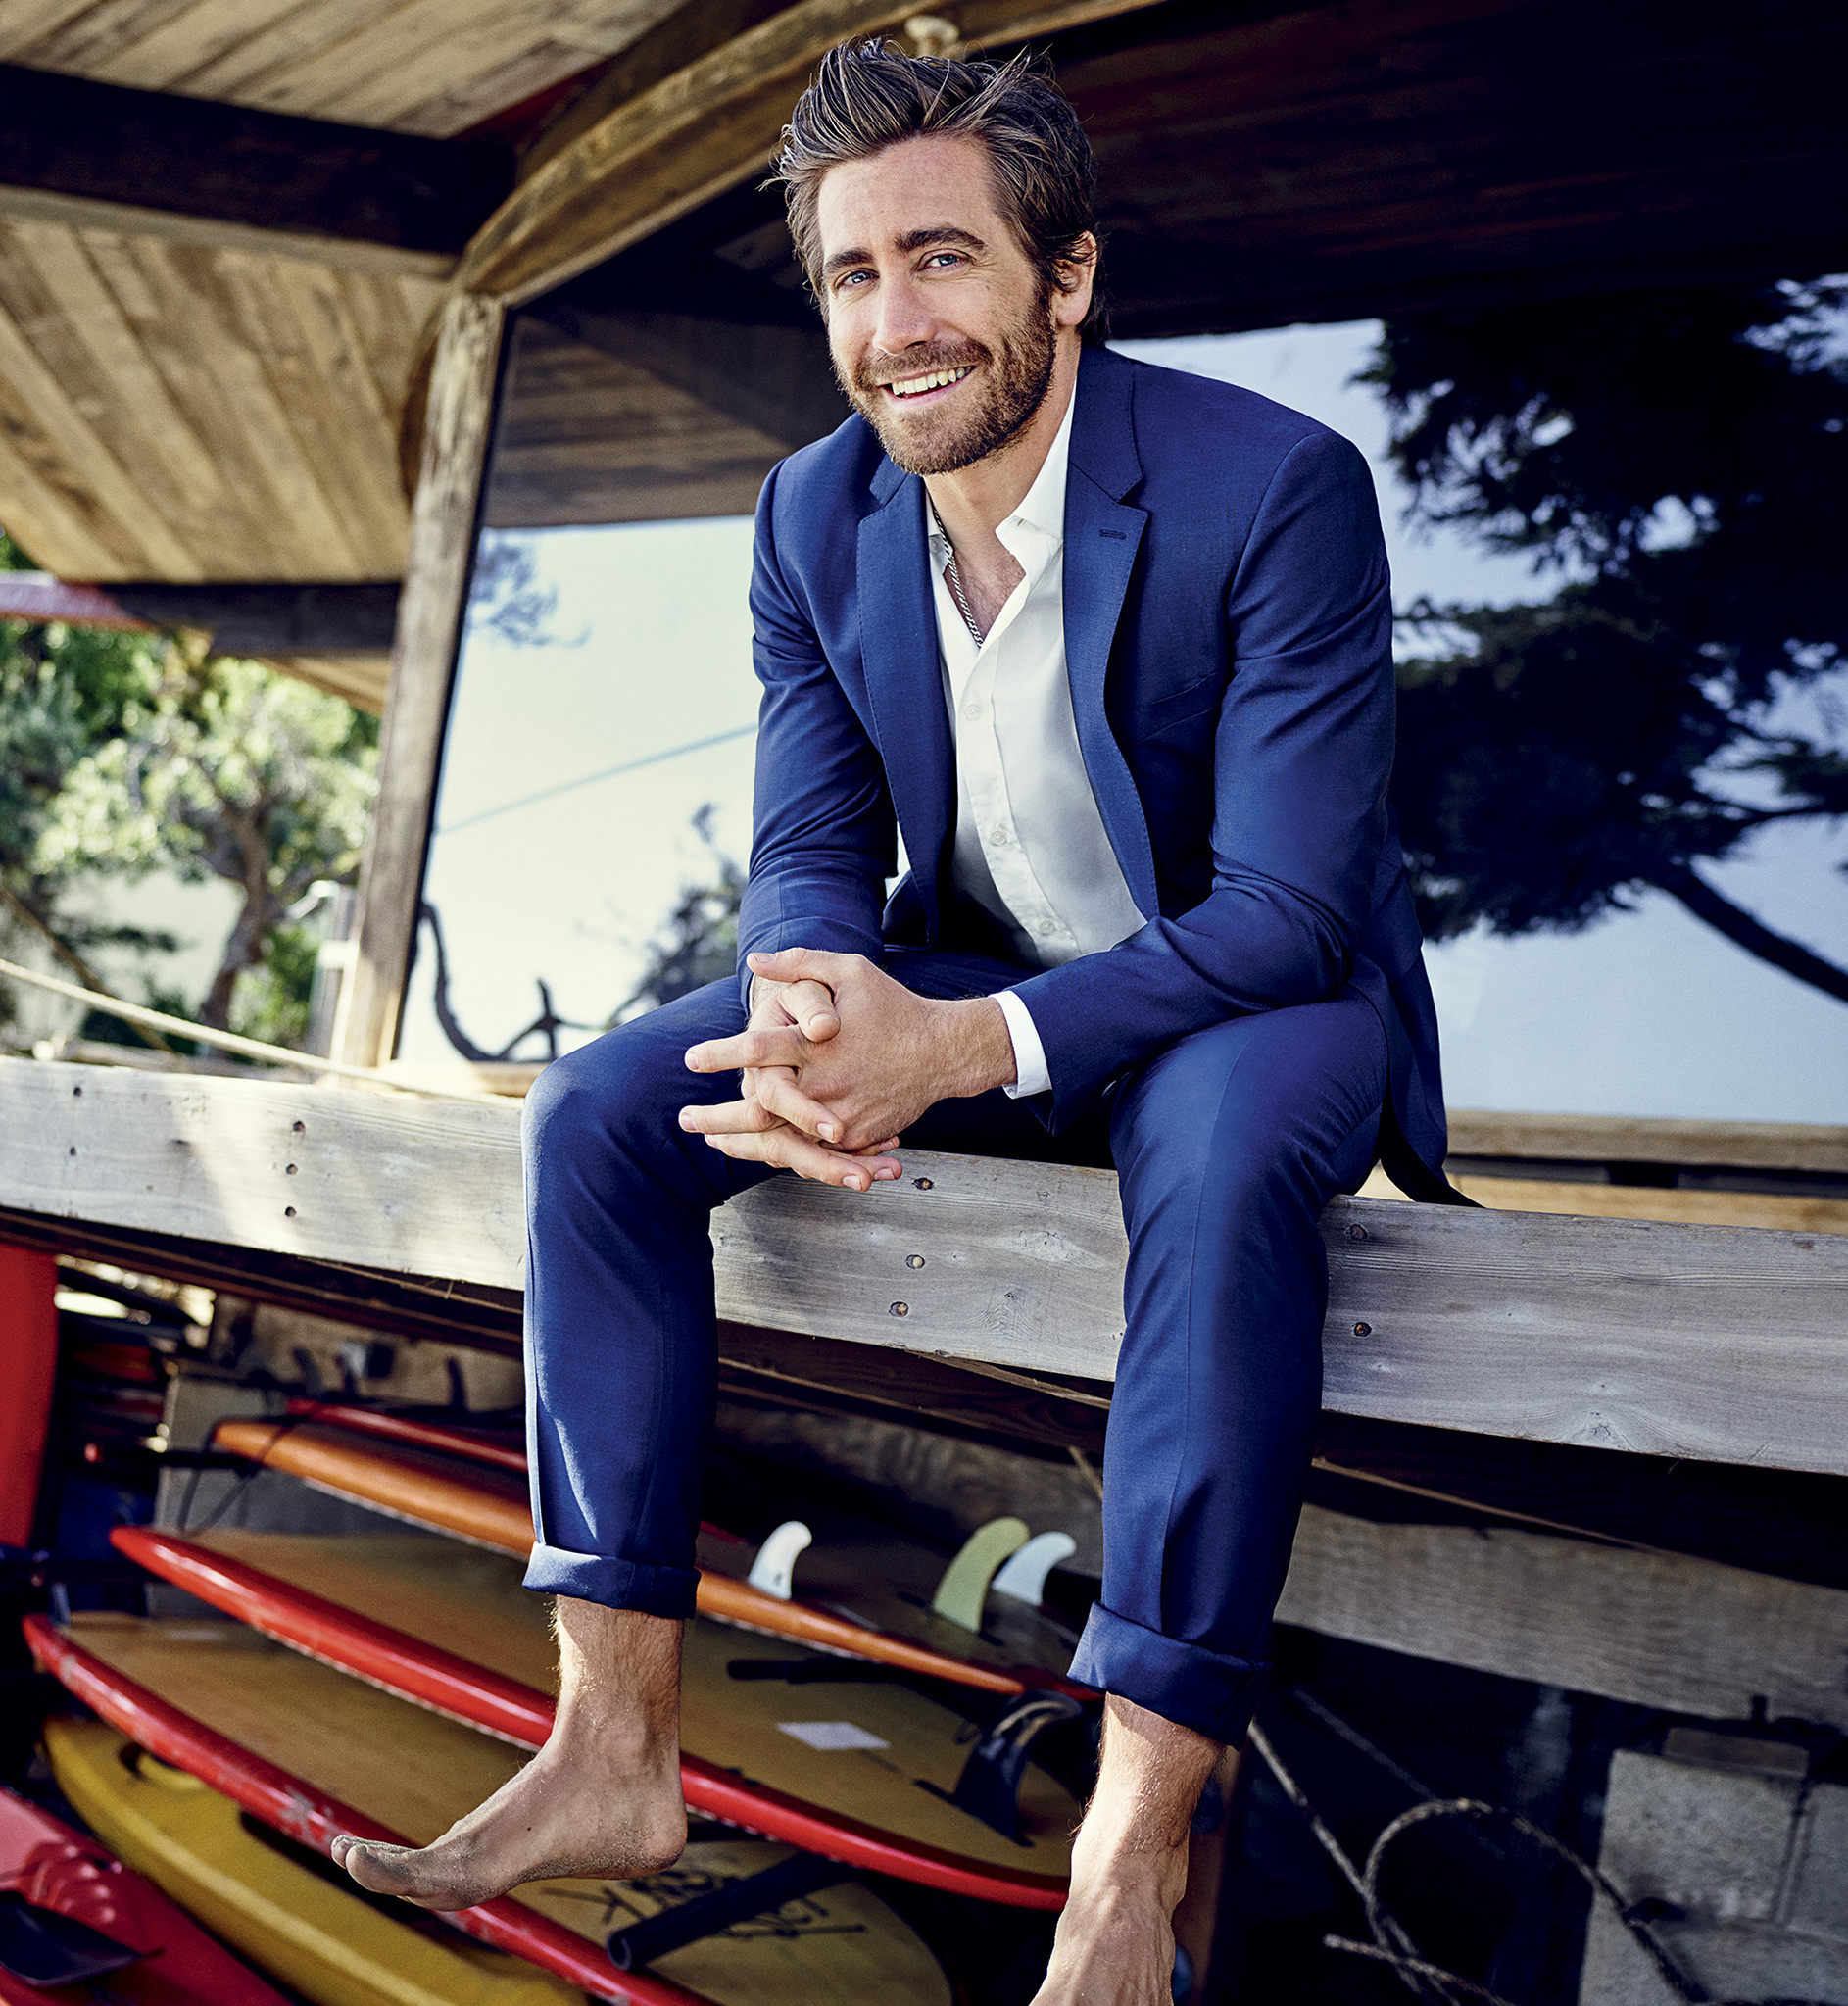 Jake Gyllenhaal photo #656749